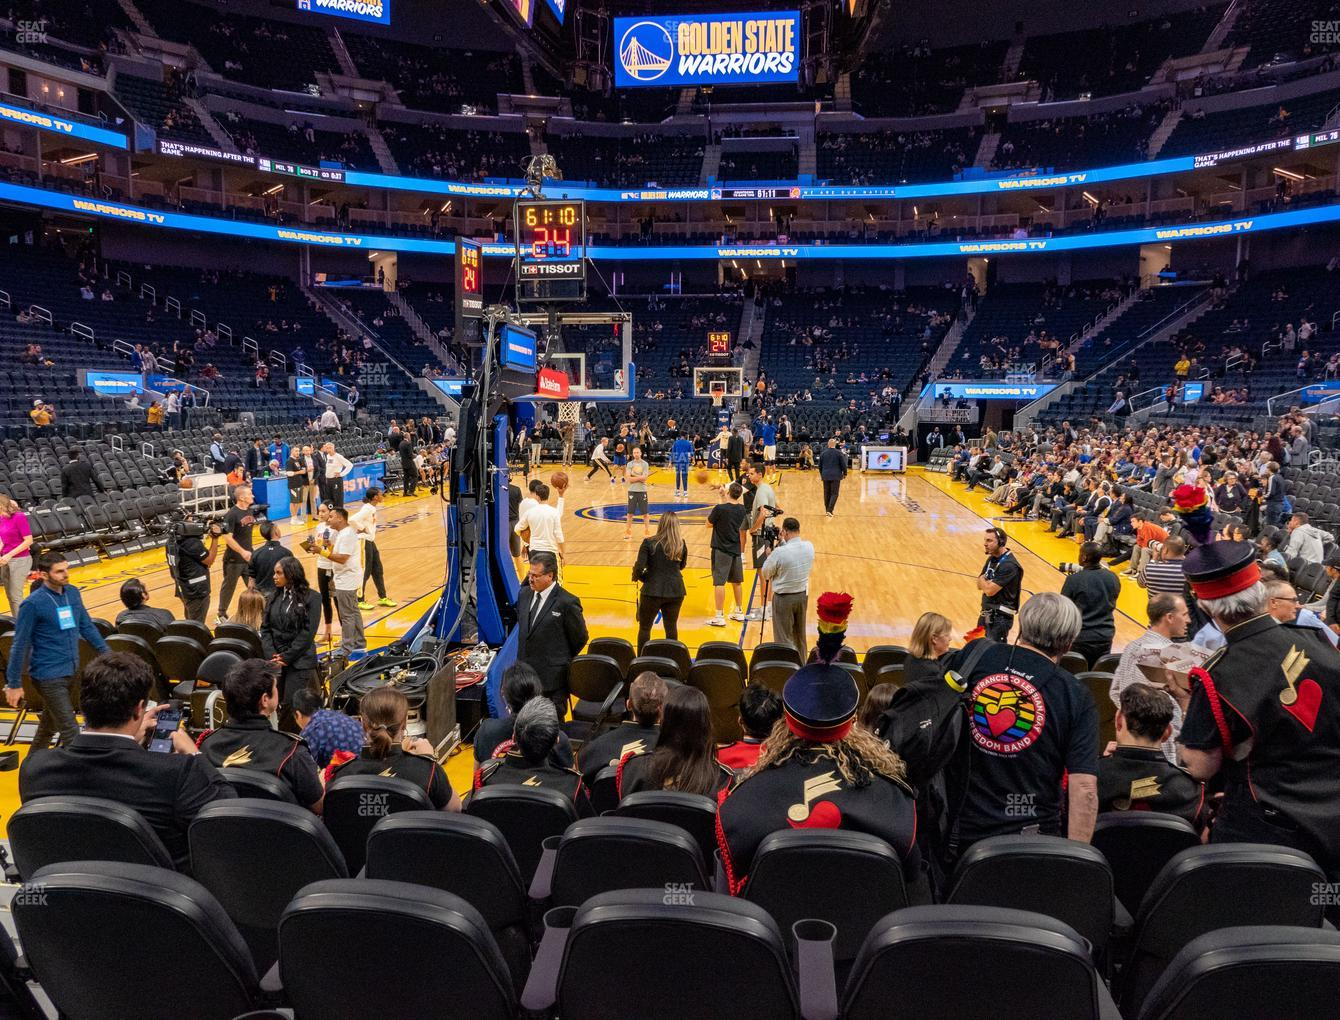 Golden State Warriors at Chase Center Riser 21 View